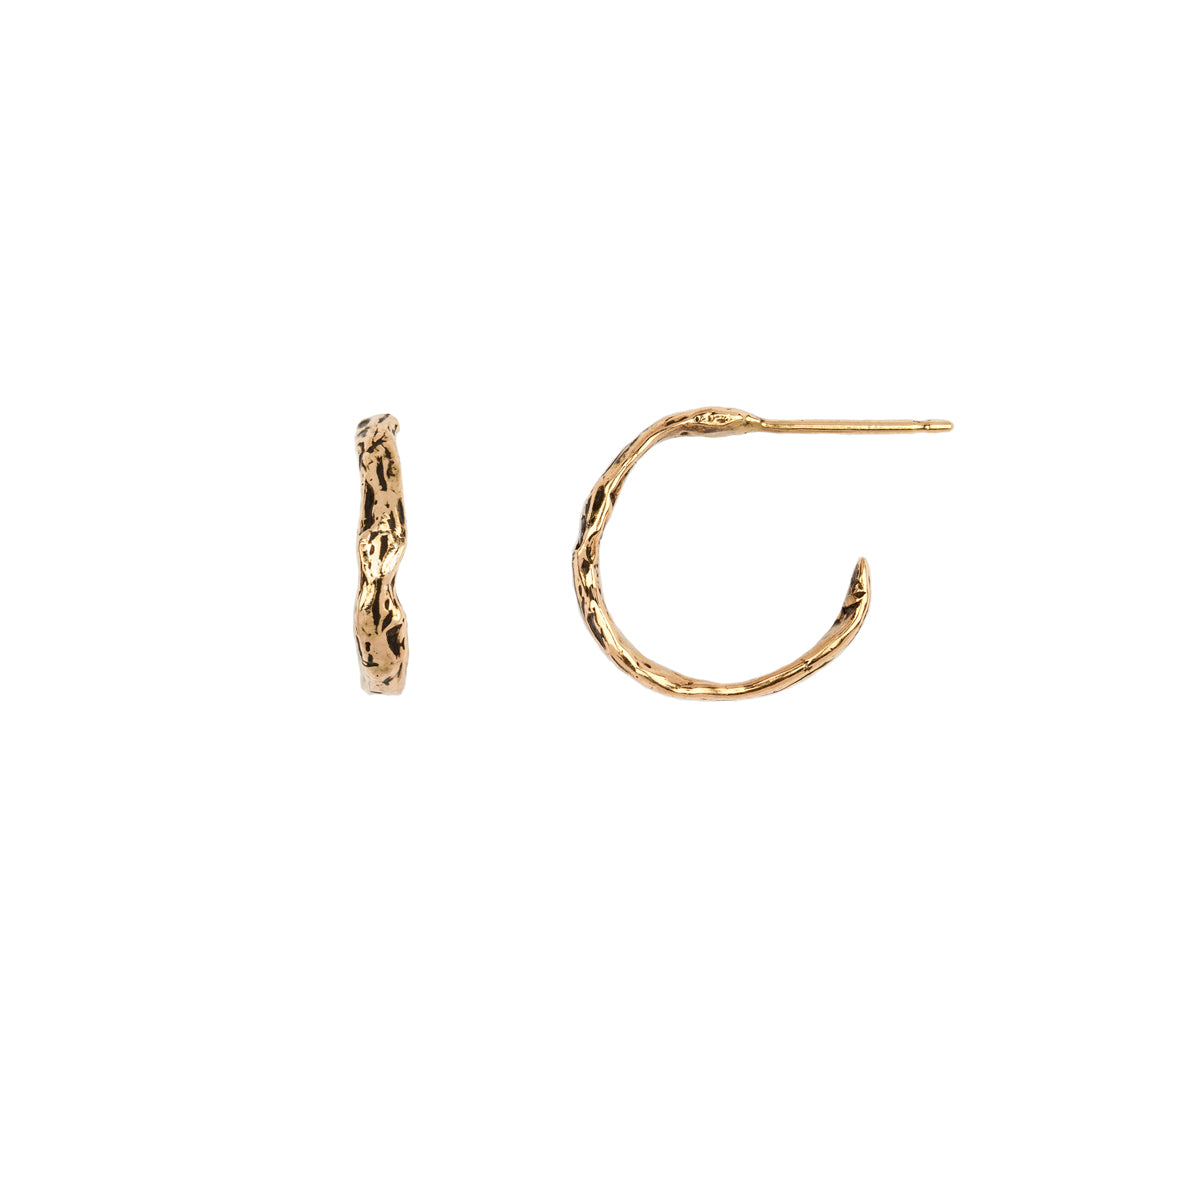 Extra Small 14K Gold Texture Hoops - pyrrha - 1